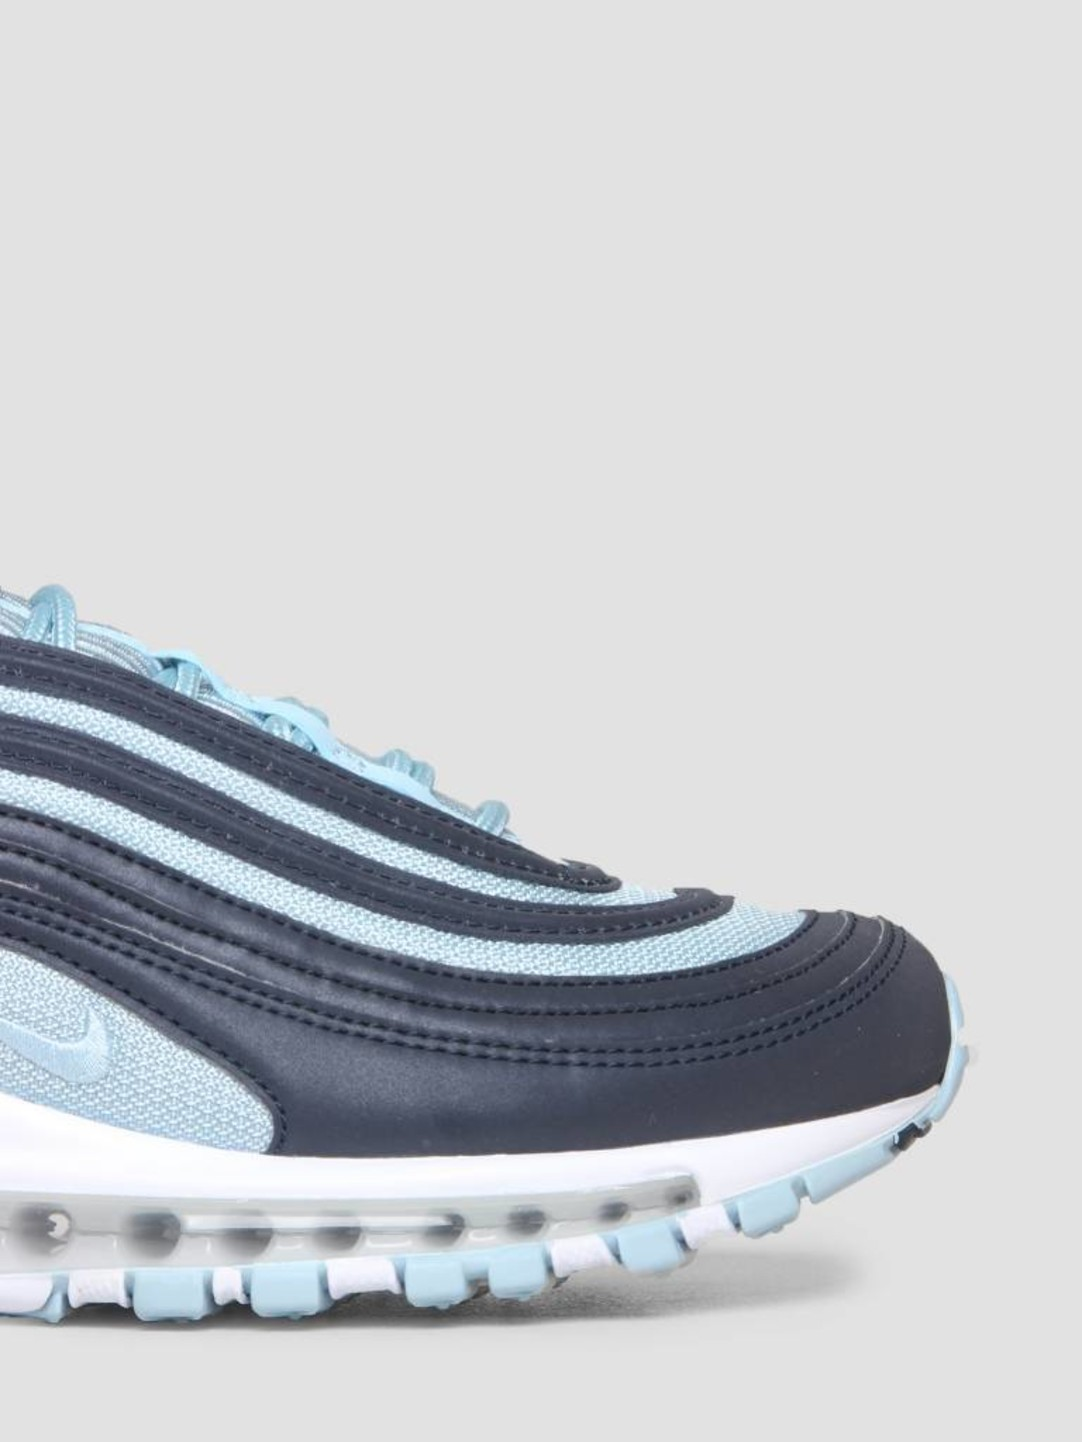 Nike Nike Air Max 97 Premium Dark Obsidian Ocean Bliss University Red Av7025-400